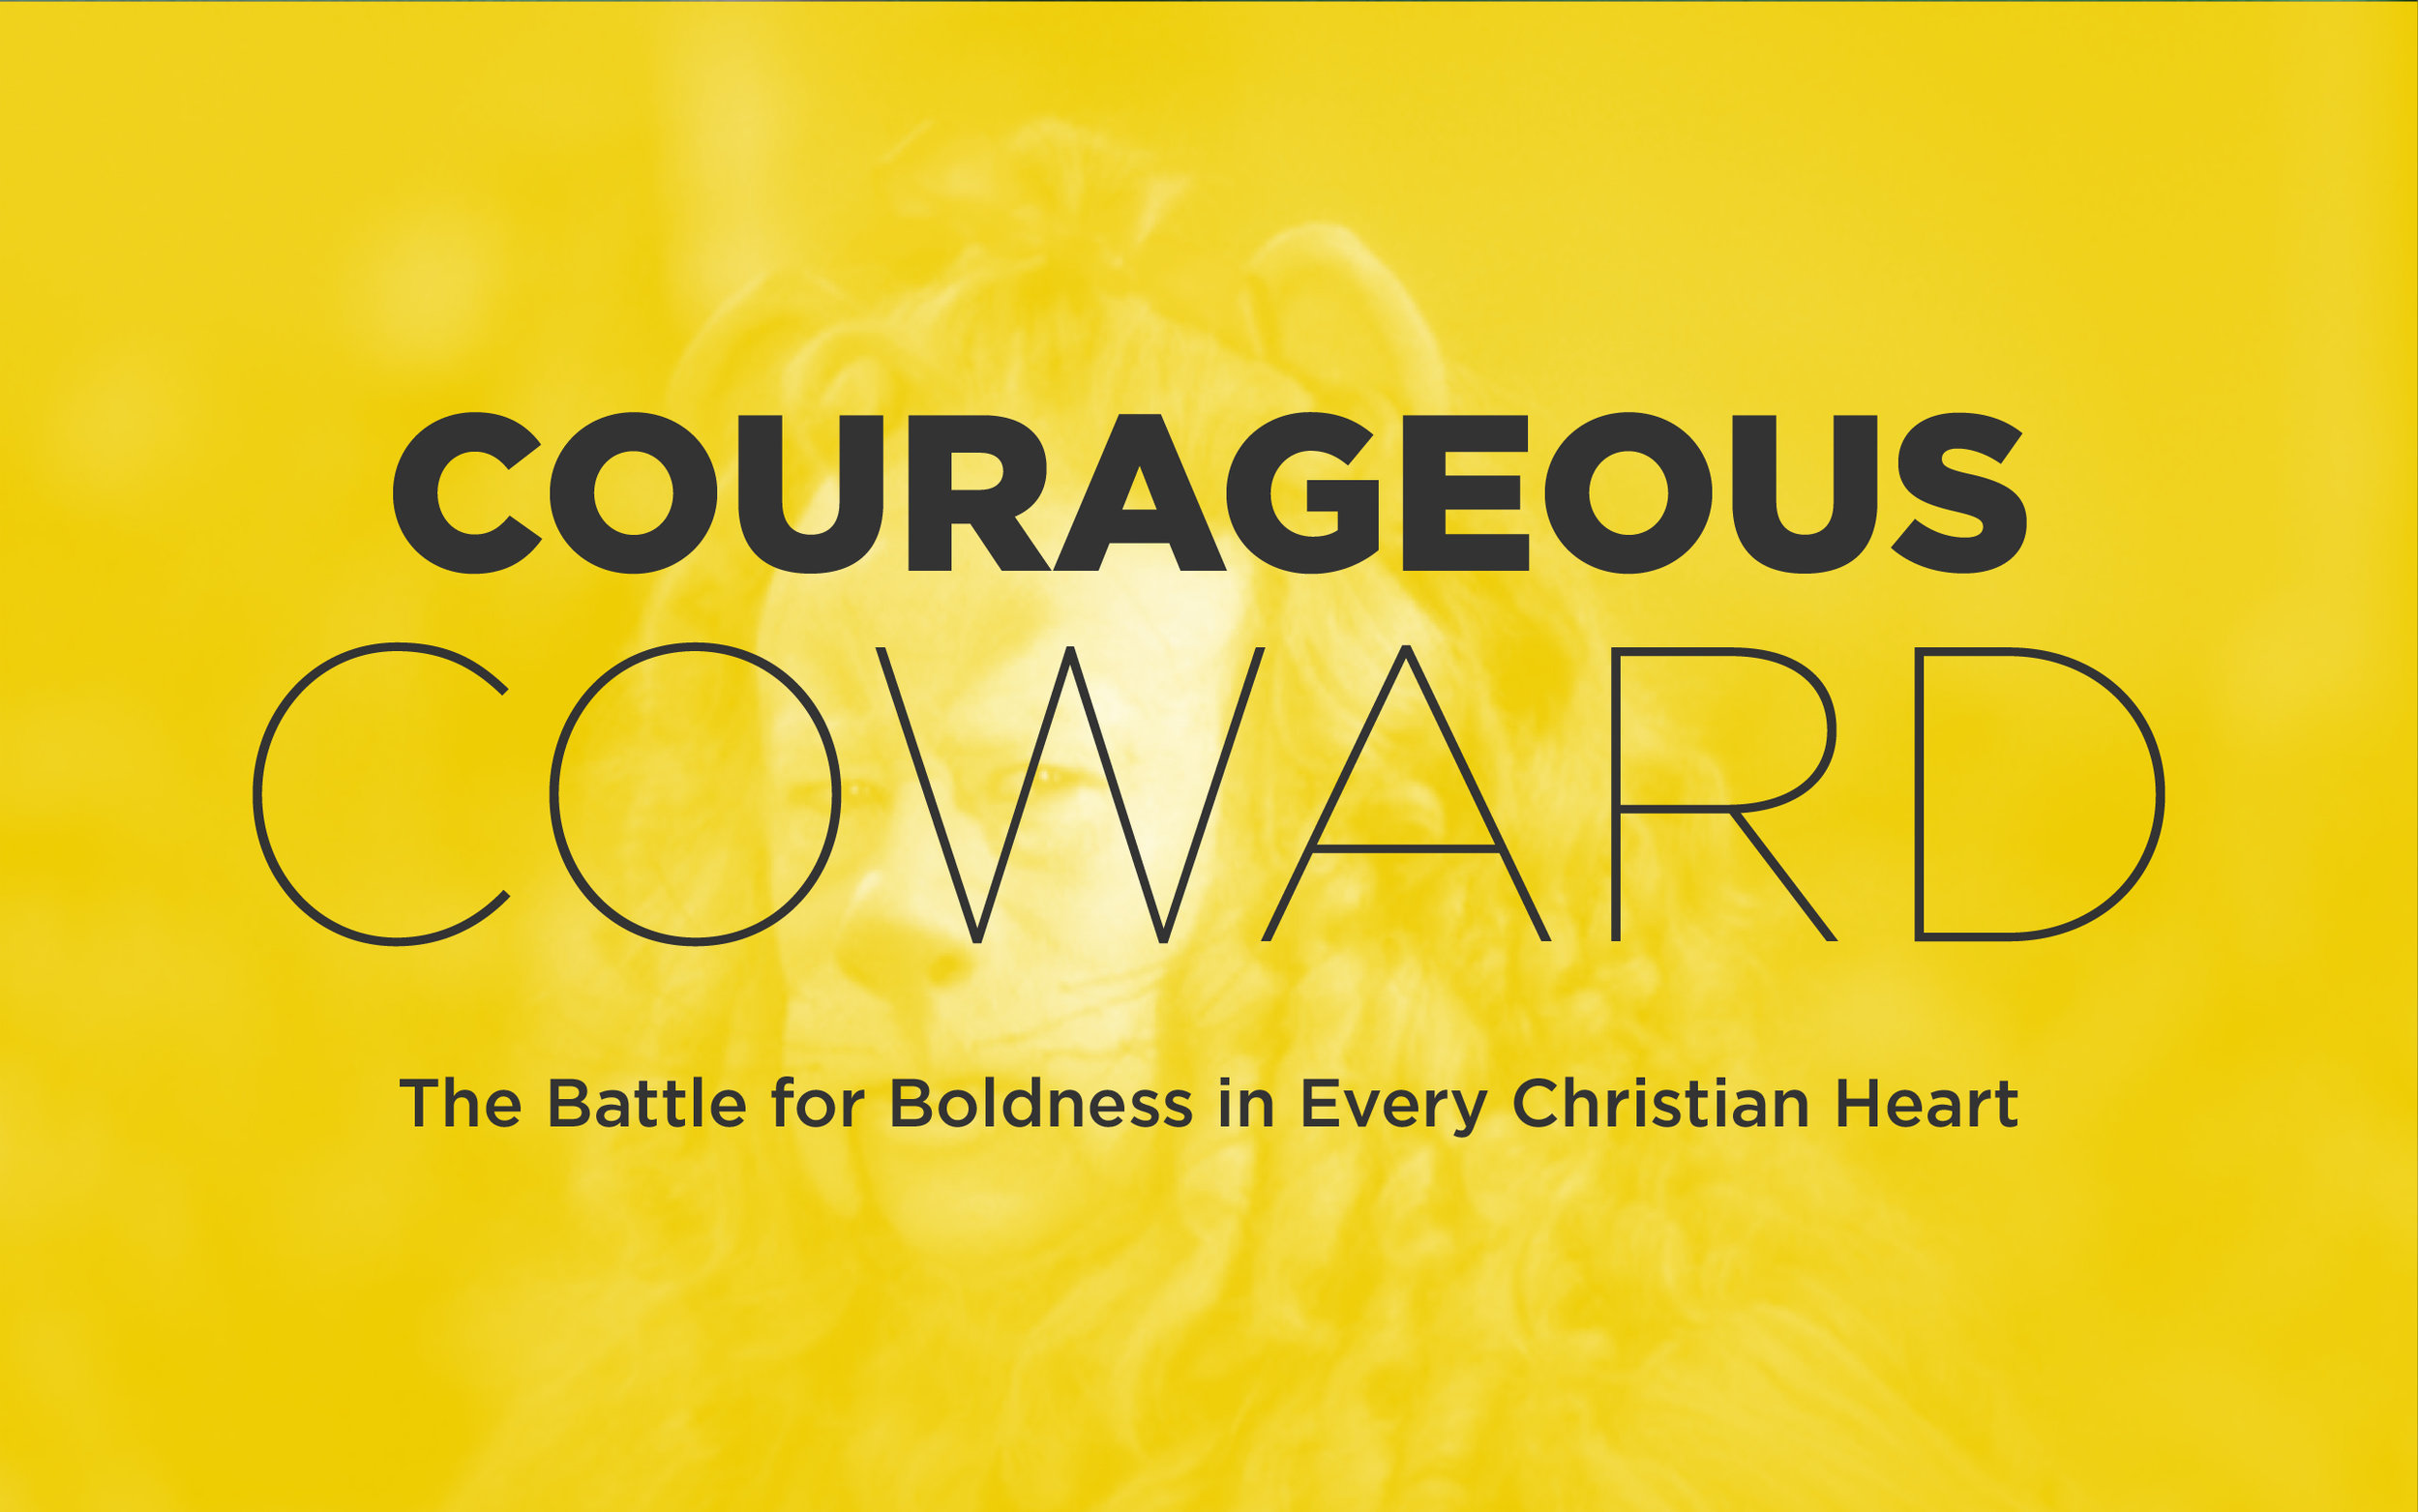 Courageous-Coward-Print.jpg